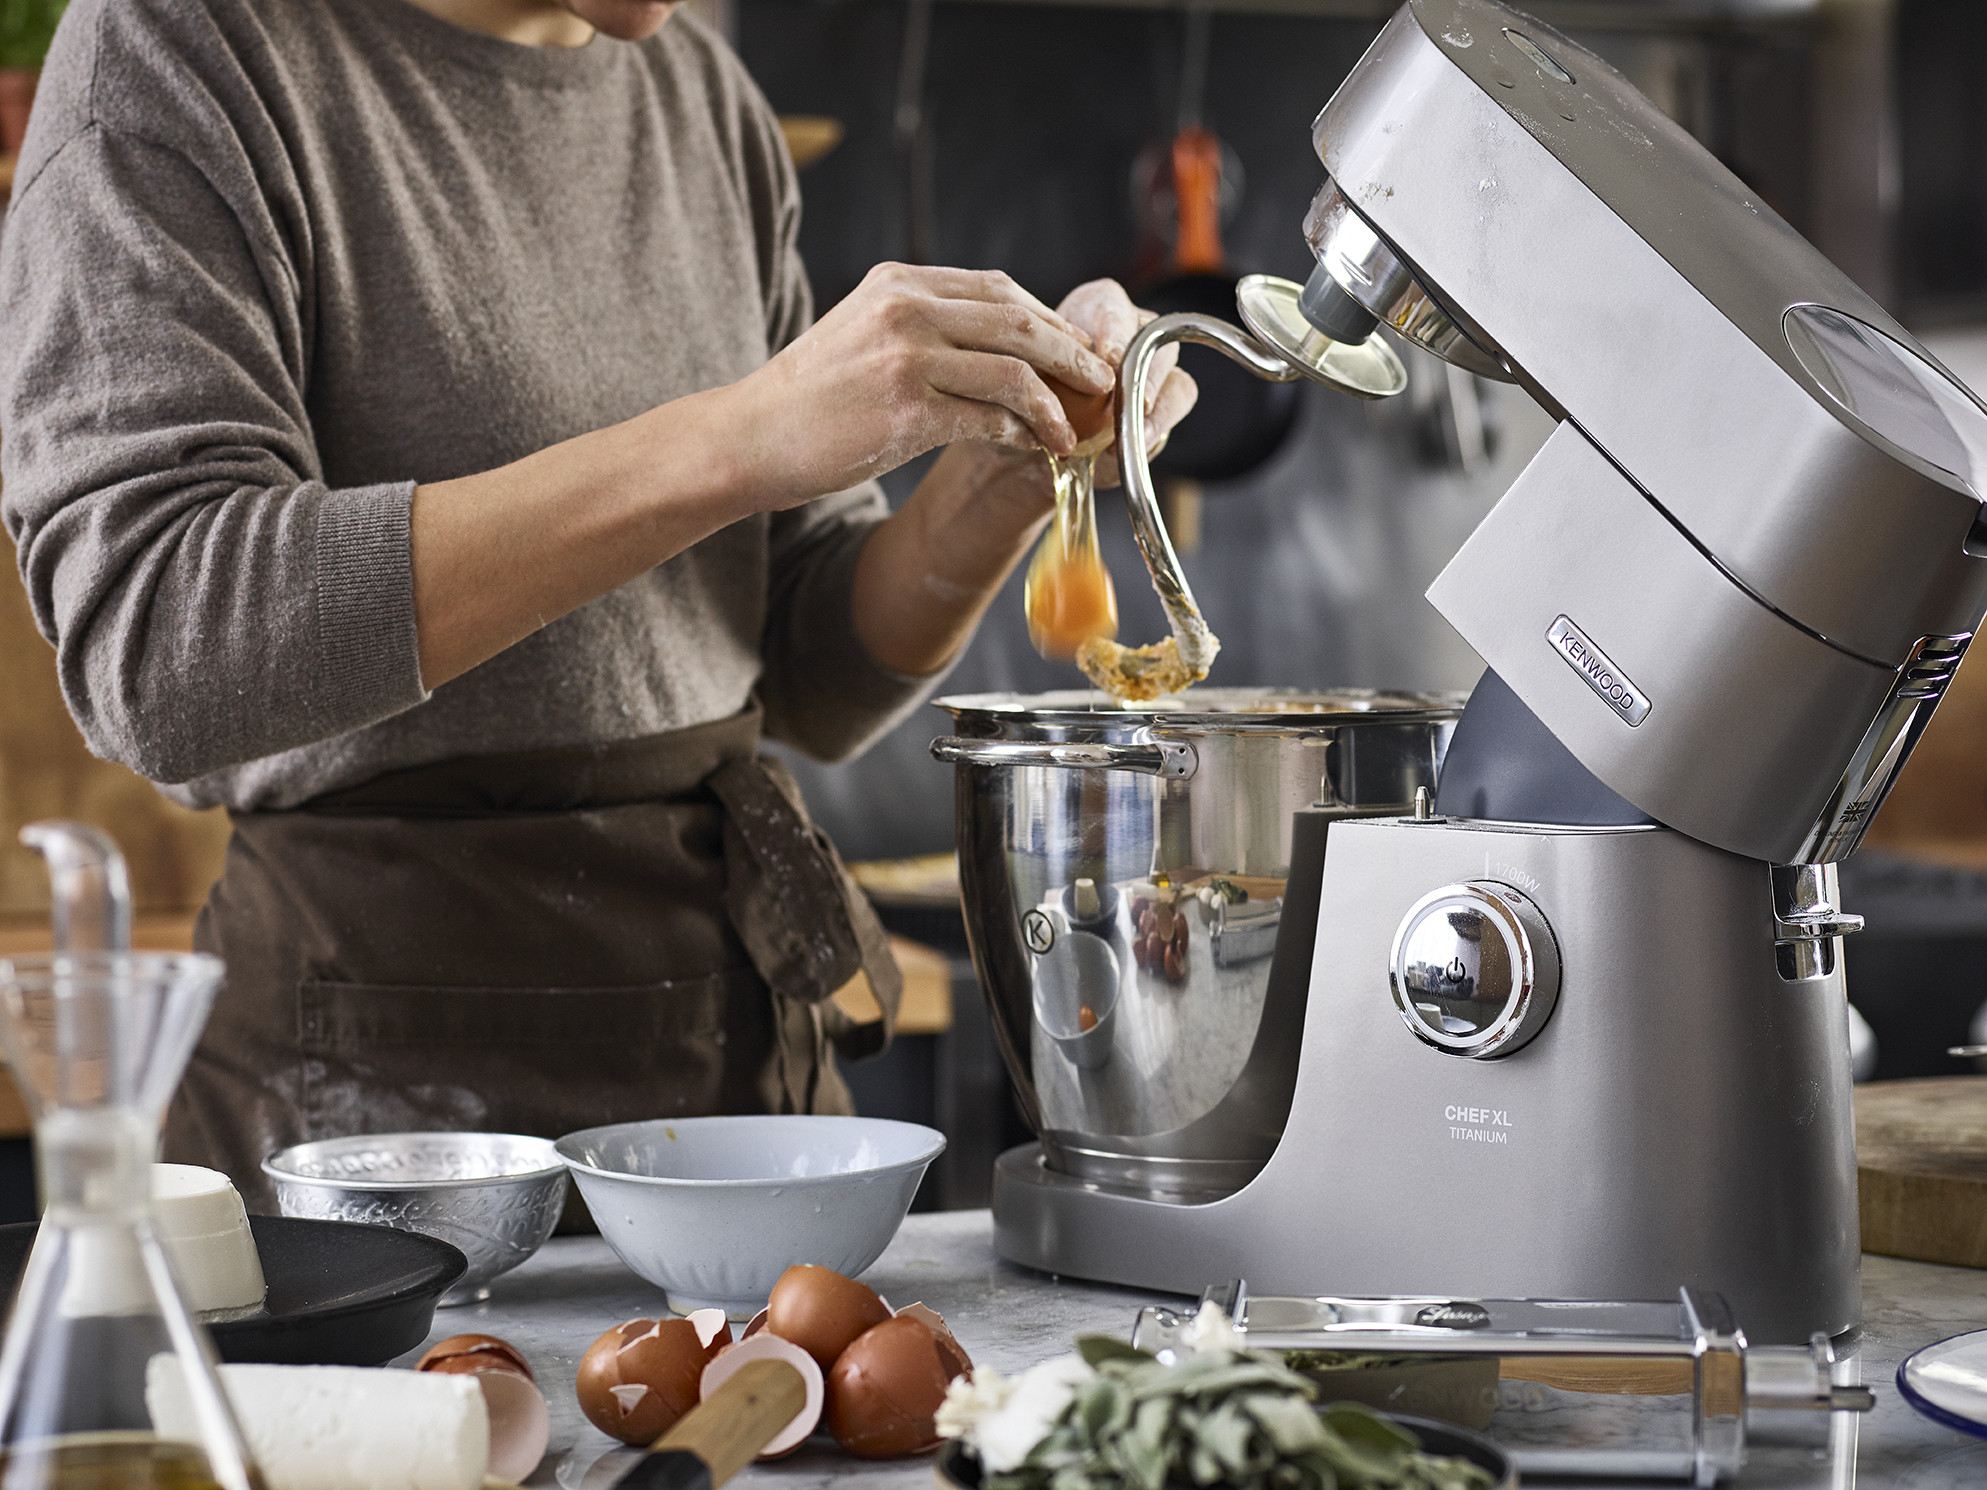 a lady cracking an egg into a standing mixer